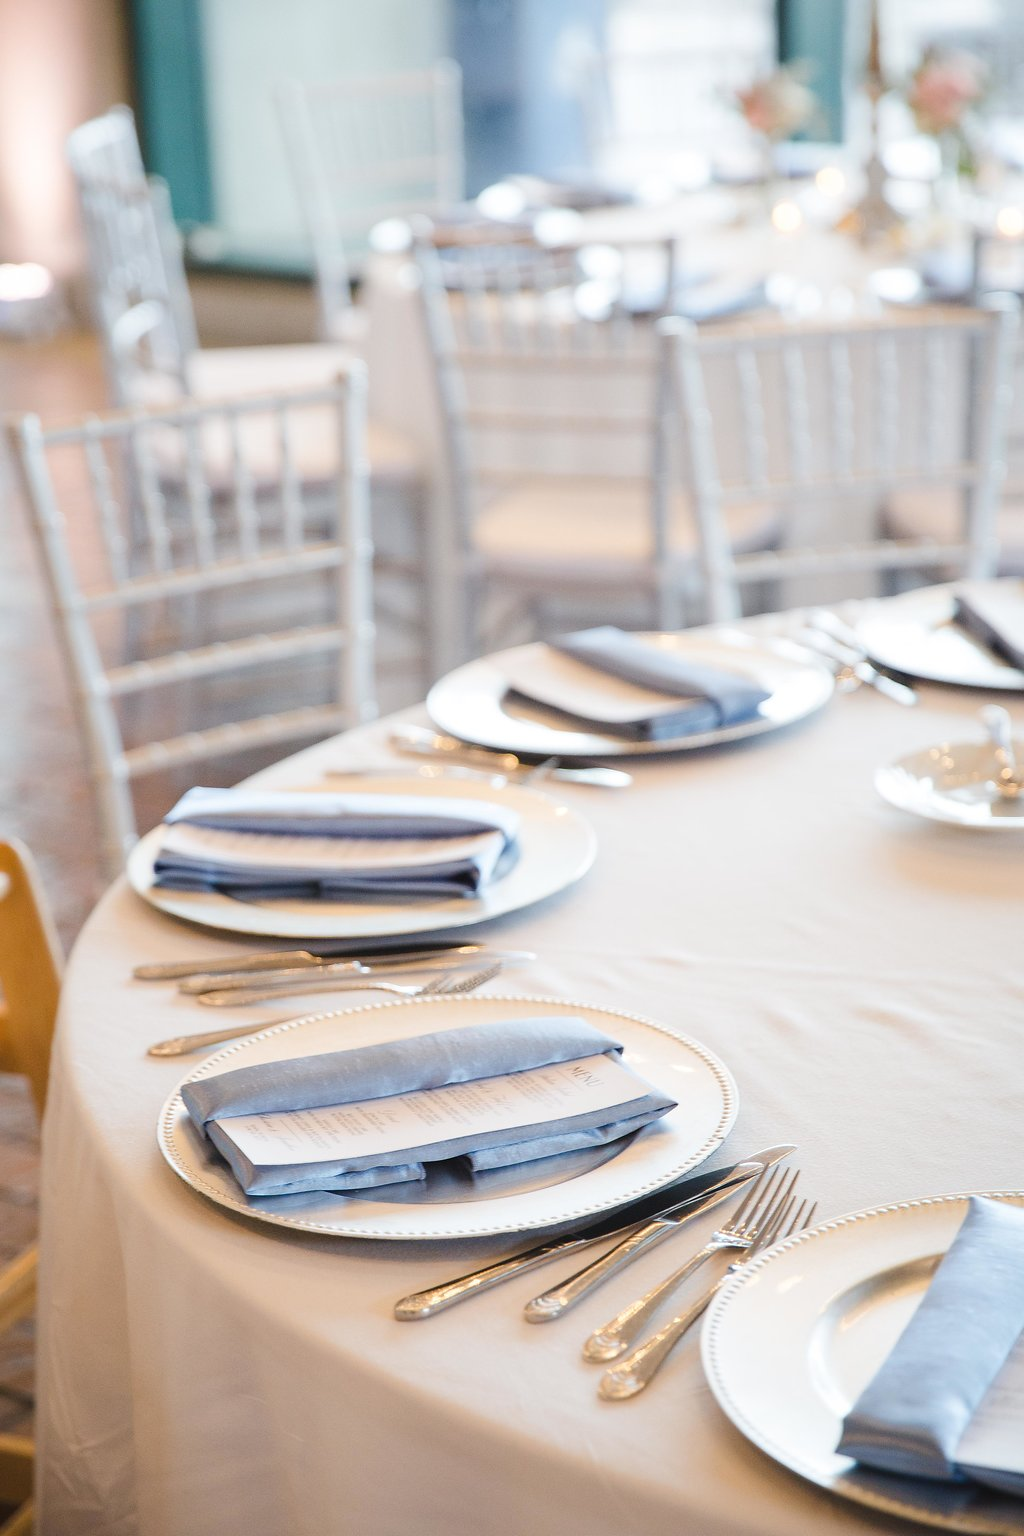 Crisp white menu cards with black script were tucked into dusty blue napkins at every place setting.